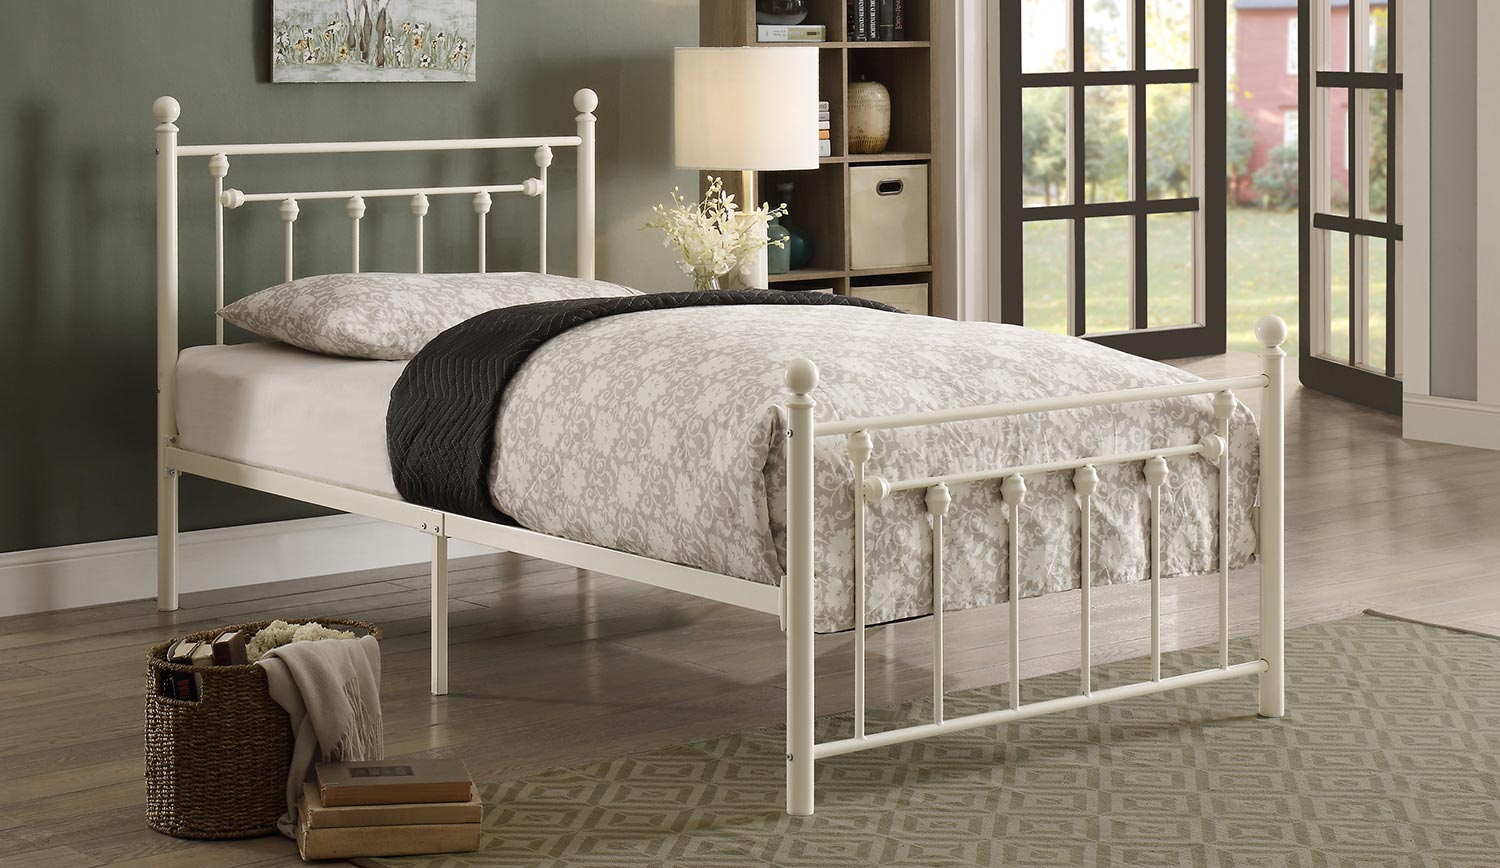 Homelegance Lia Metal Platform Bed White 2048tw 1 At